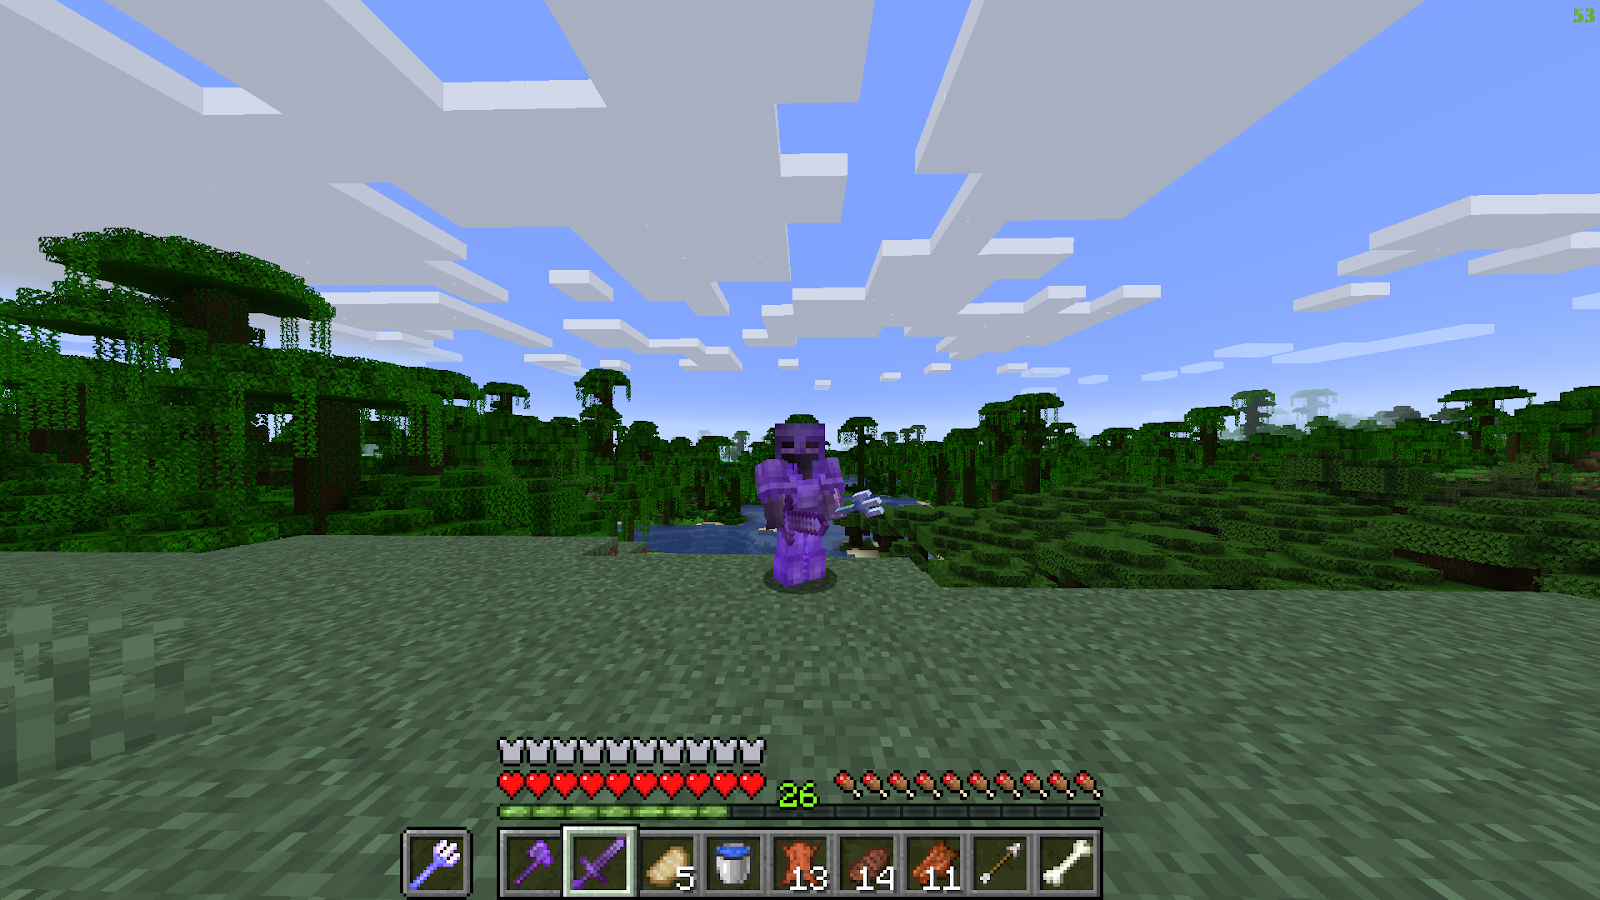 Armored Minecraft player standing before a forest biome